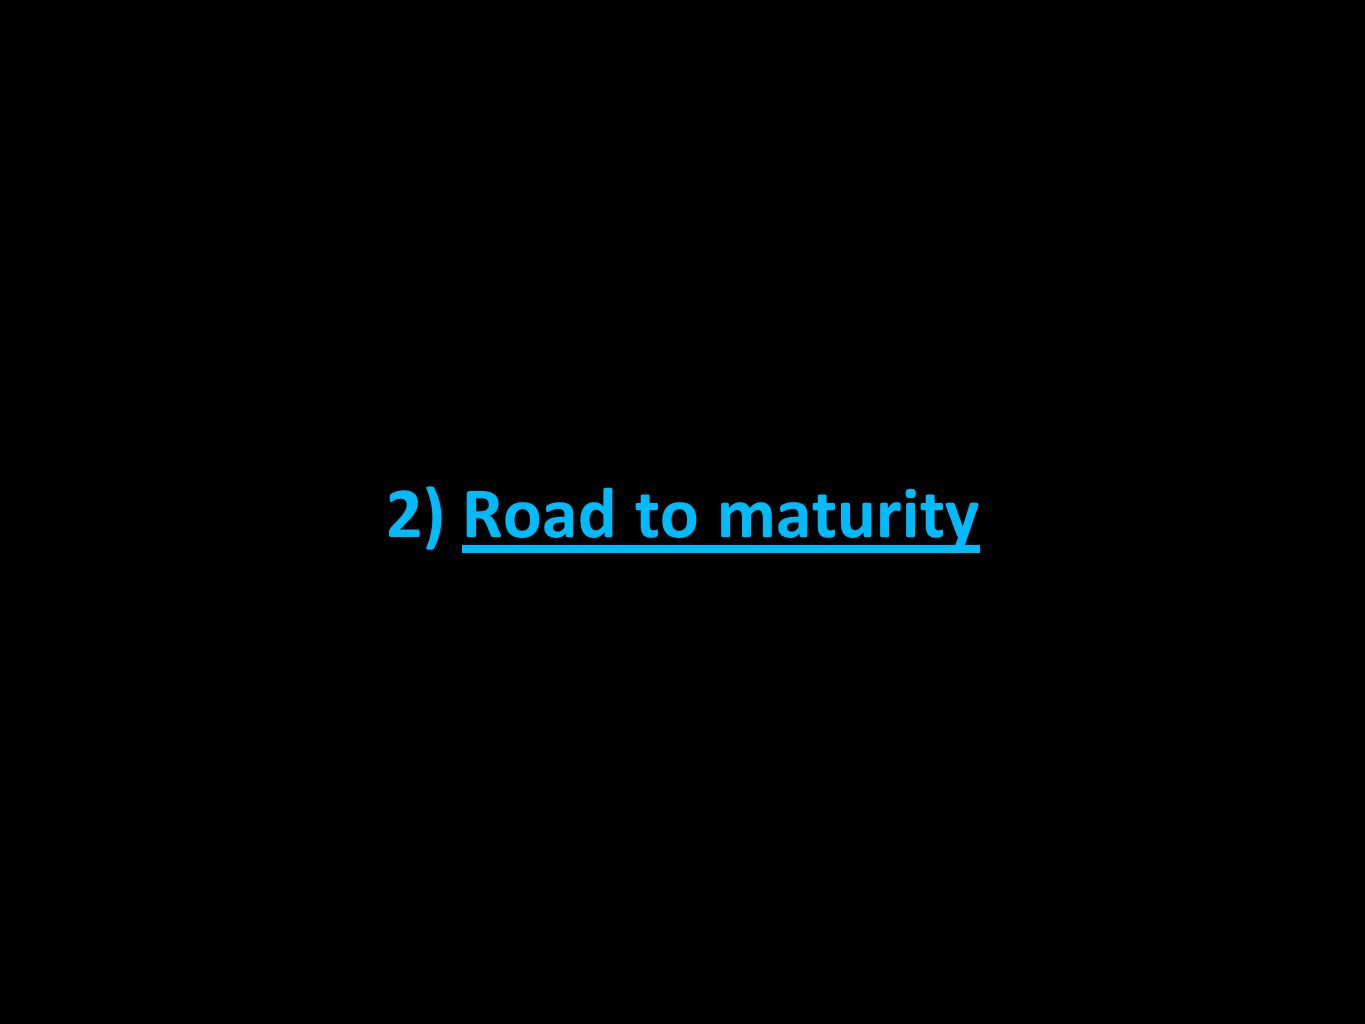 2) Road to maturity